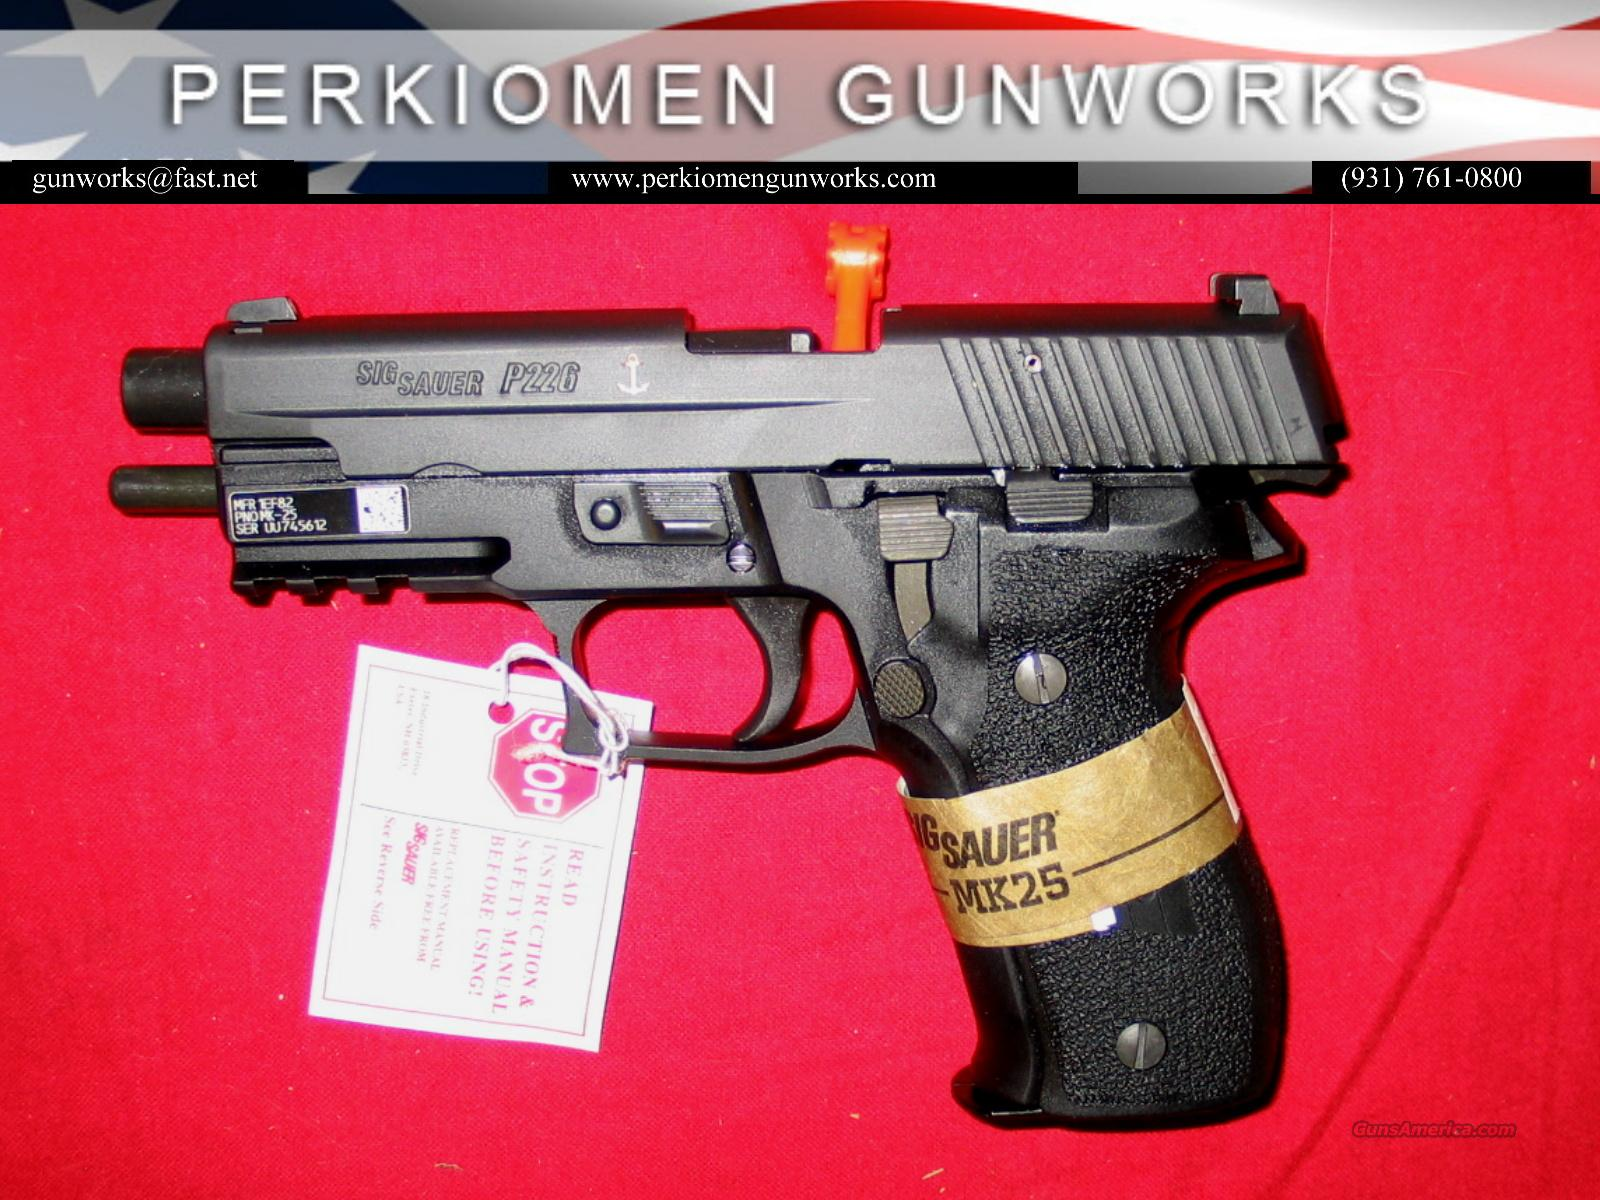 MK25 Navy P226, 9mm, 3-15rd Mags, New in Box  Guns > Pistols > Sig - Sauer/Sigarms Pistols > P226